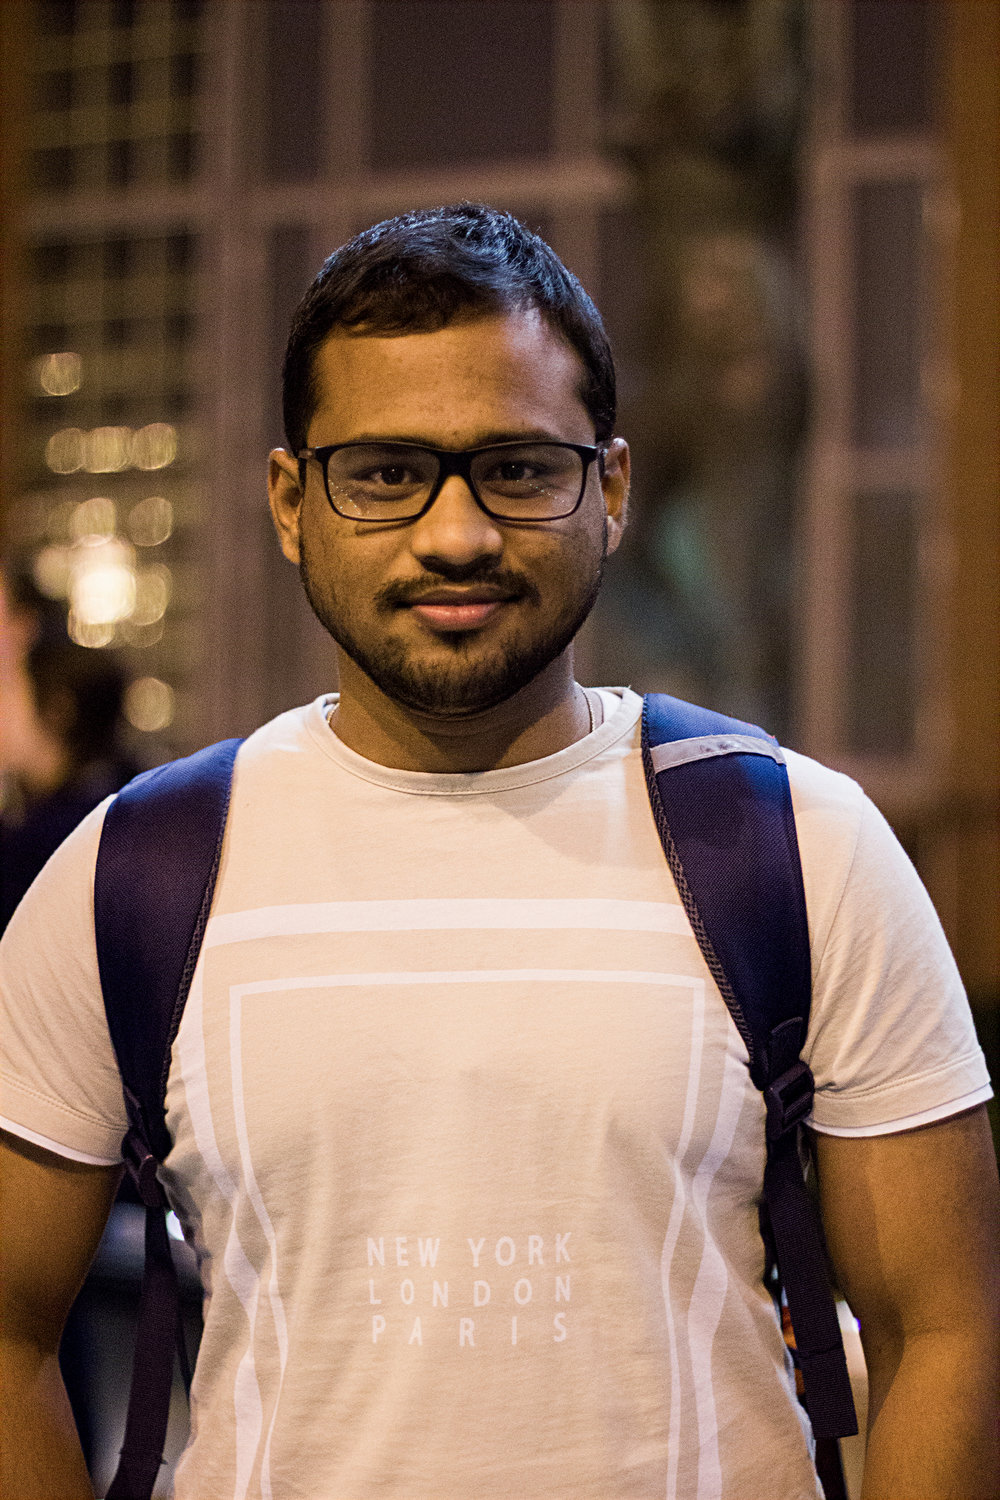 Prasan Karthikeyan, first-year graduate, is from Chennai, India and studies information management. Photo by Hanna Benavides.